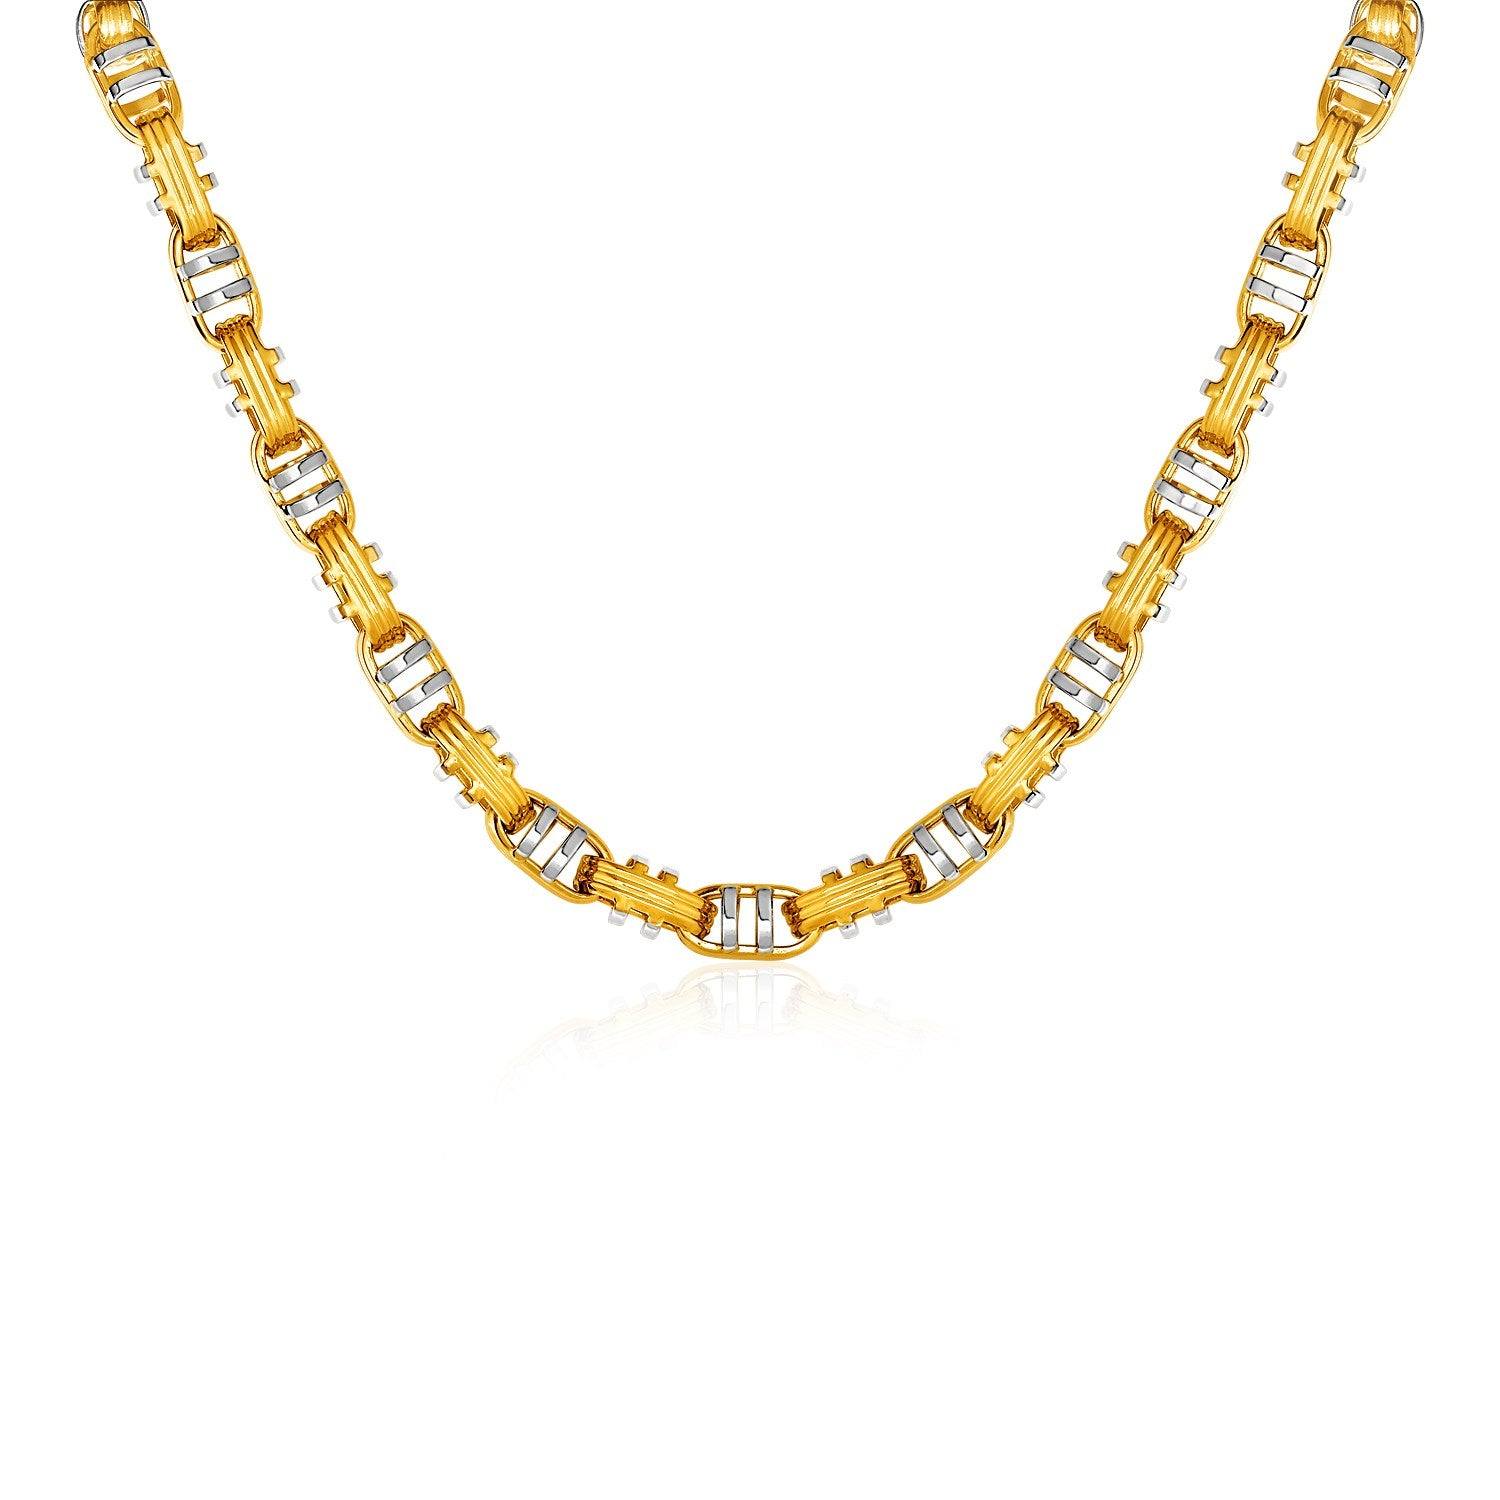 design bvlgari chains ideas s and gold clipart white stylish yellow jewelry men necklace chain